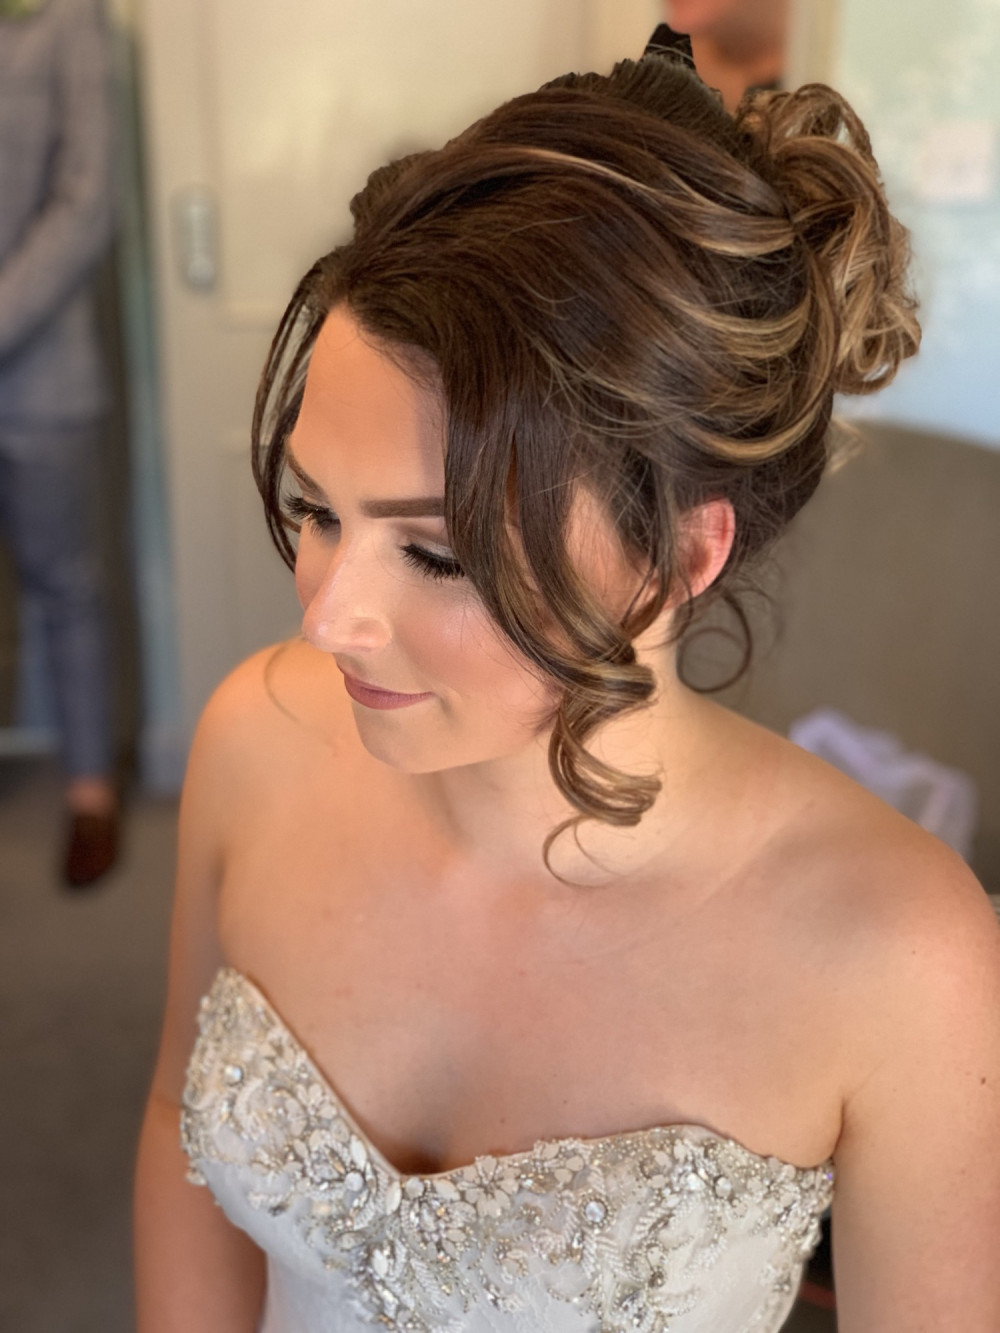 Brides hair and makeup photo